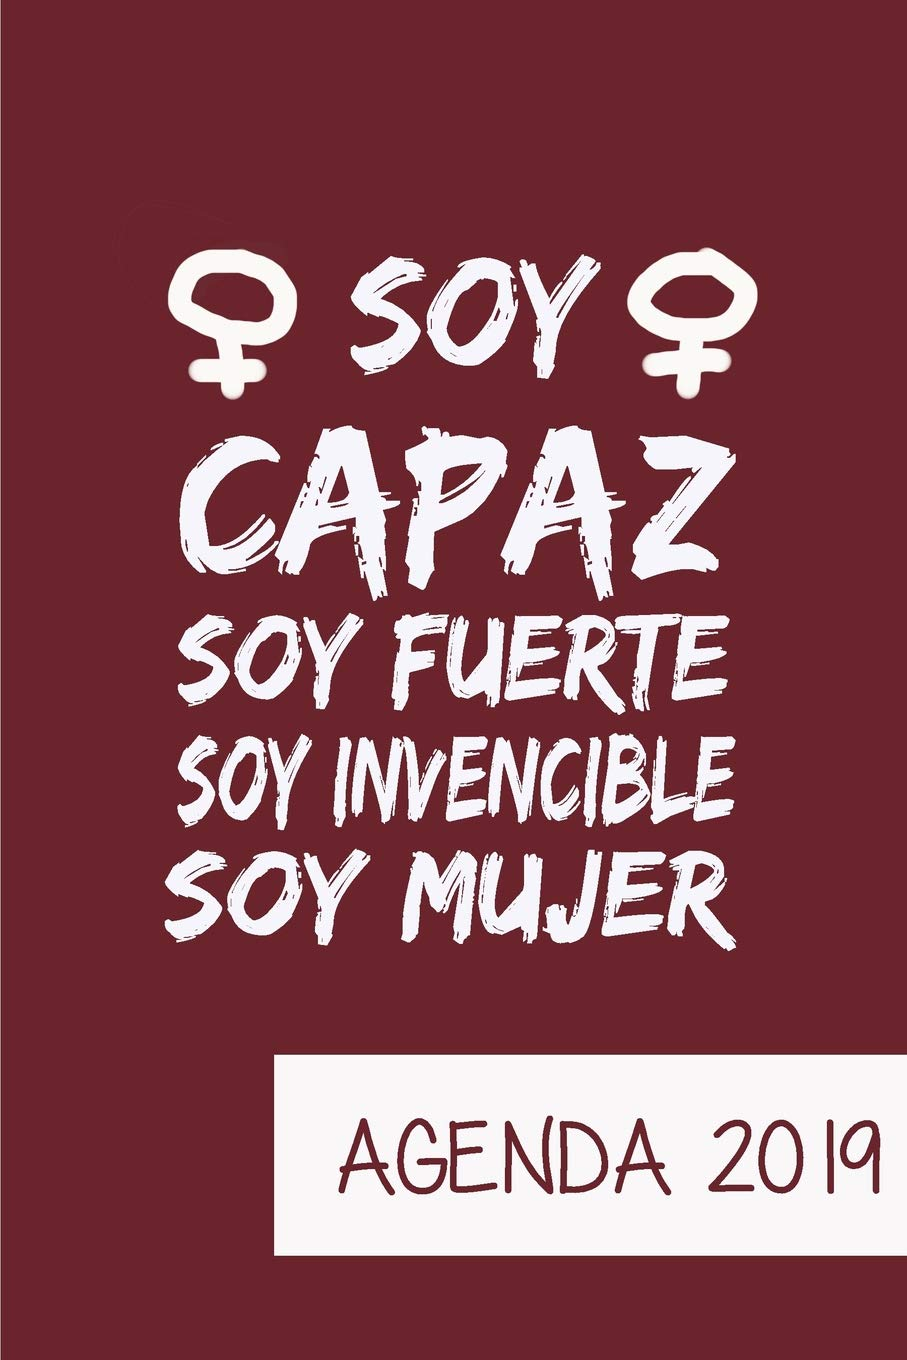 Agenda 2019 Soy Capaz Soy Fuerte Soy Invencible Soy Mujer ...